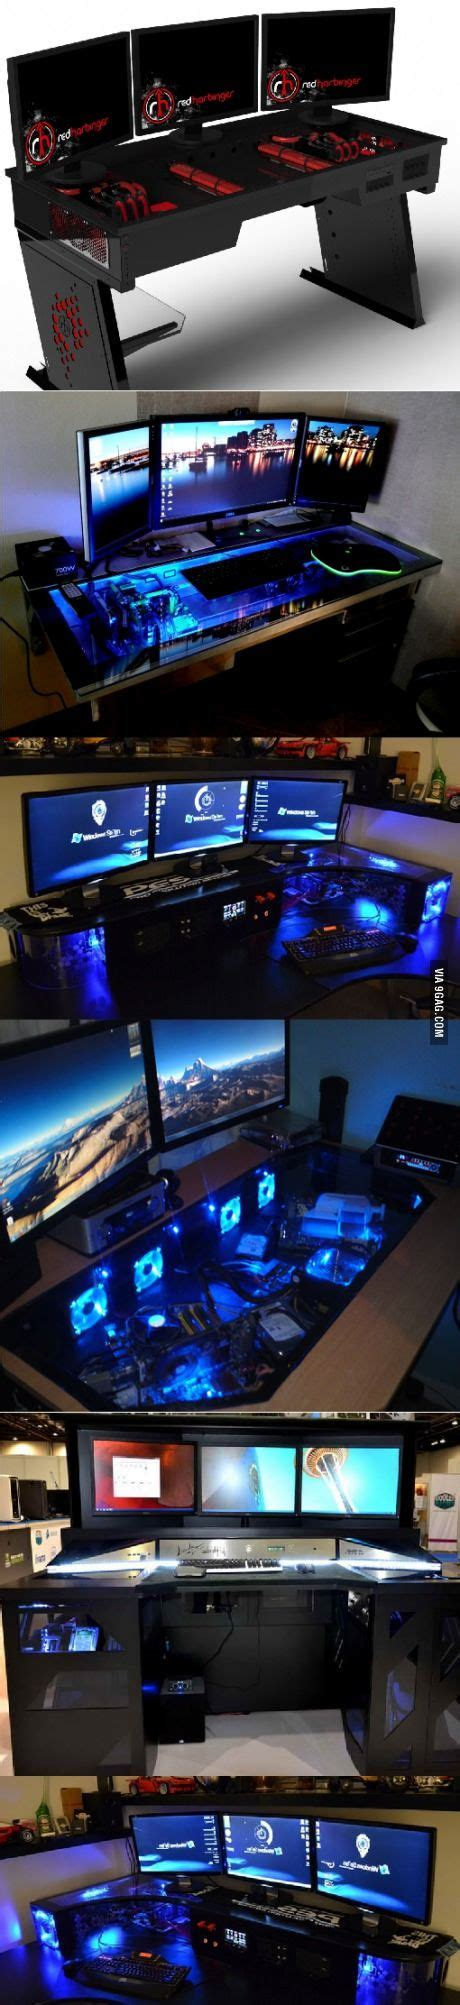 brother agreed  build epic gaming desk     post